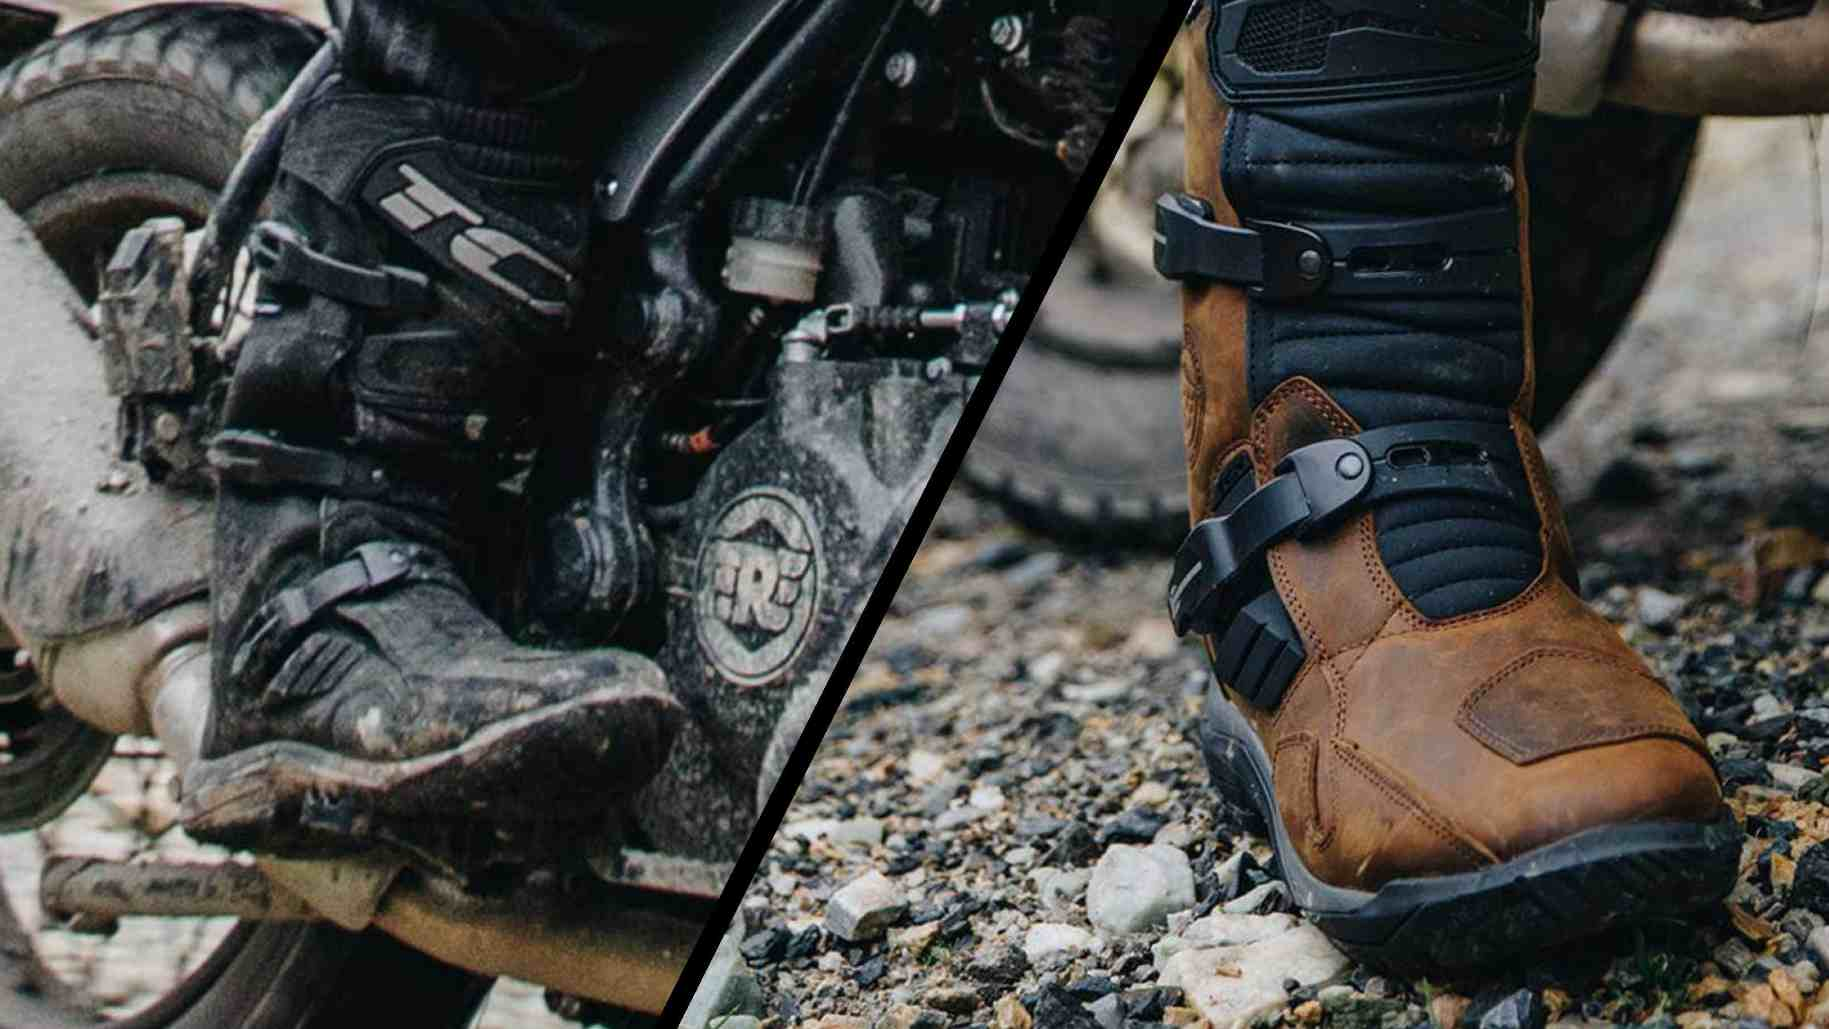 Prices for the Royal Enfield-TCX riding shoes range from Rs 8,500 to Rs 21,000. Image: Royal Enfield